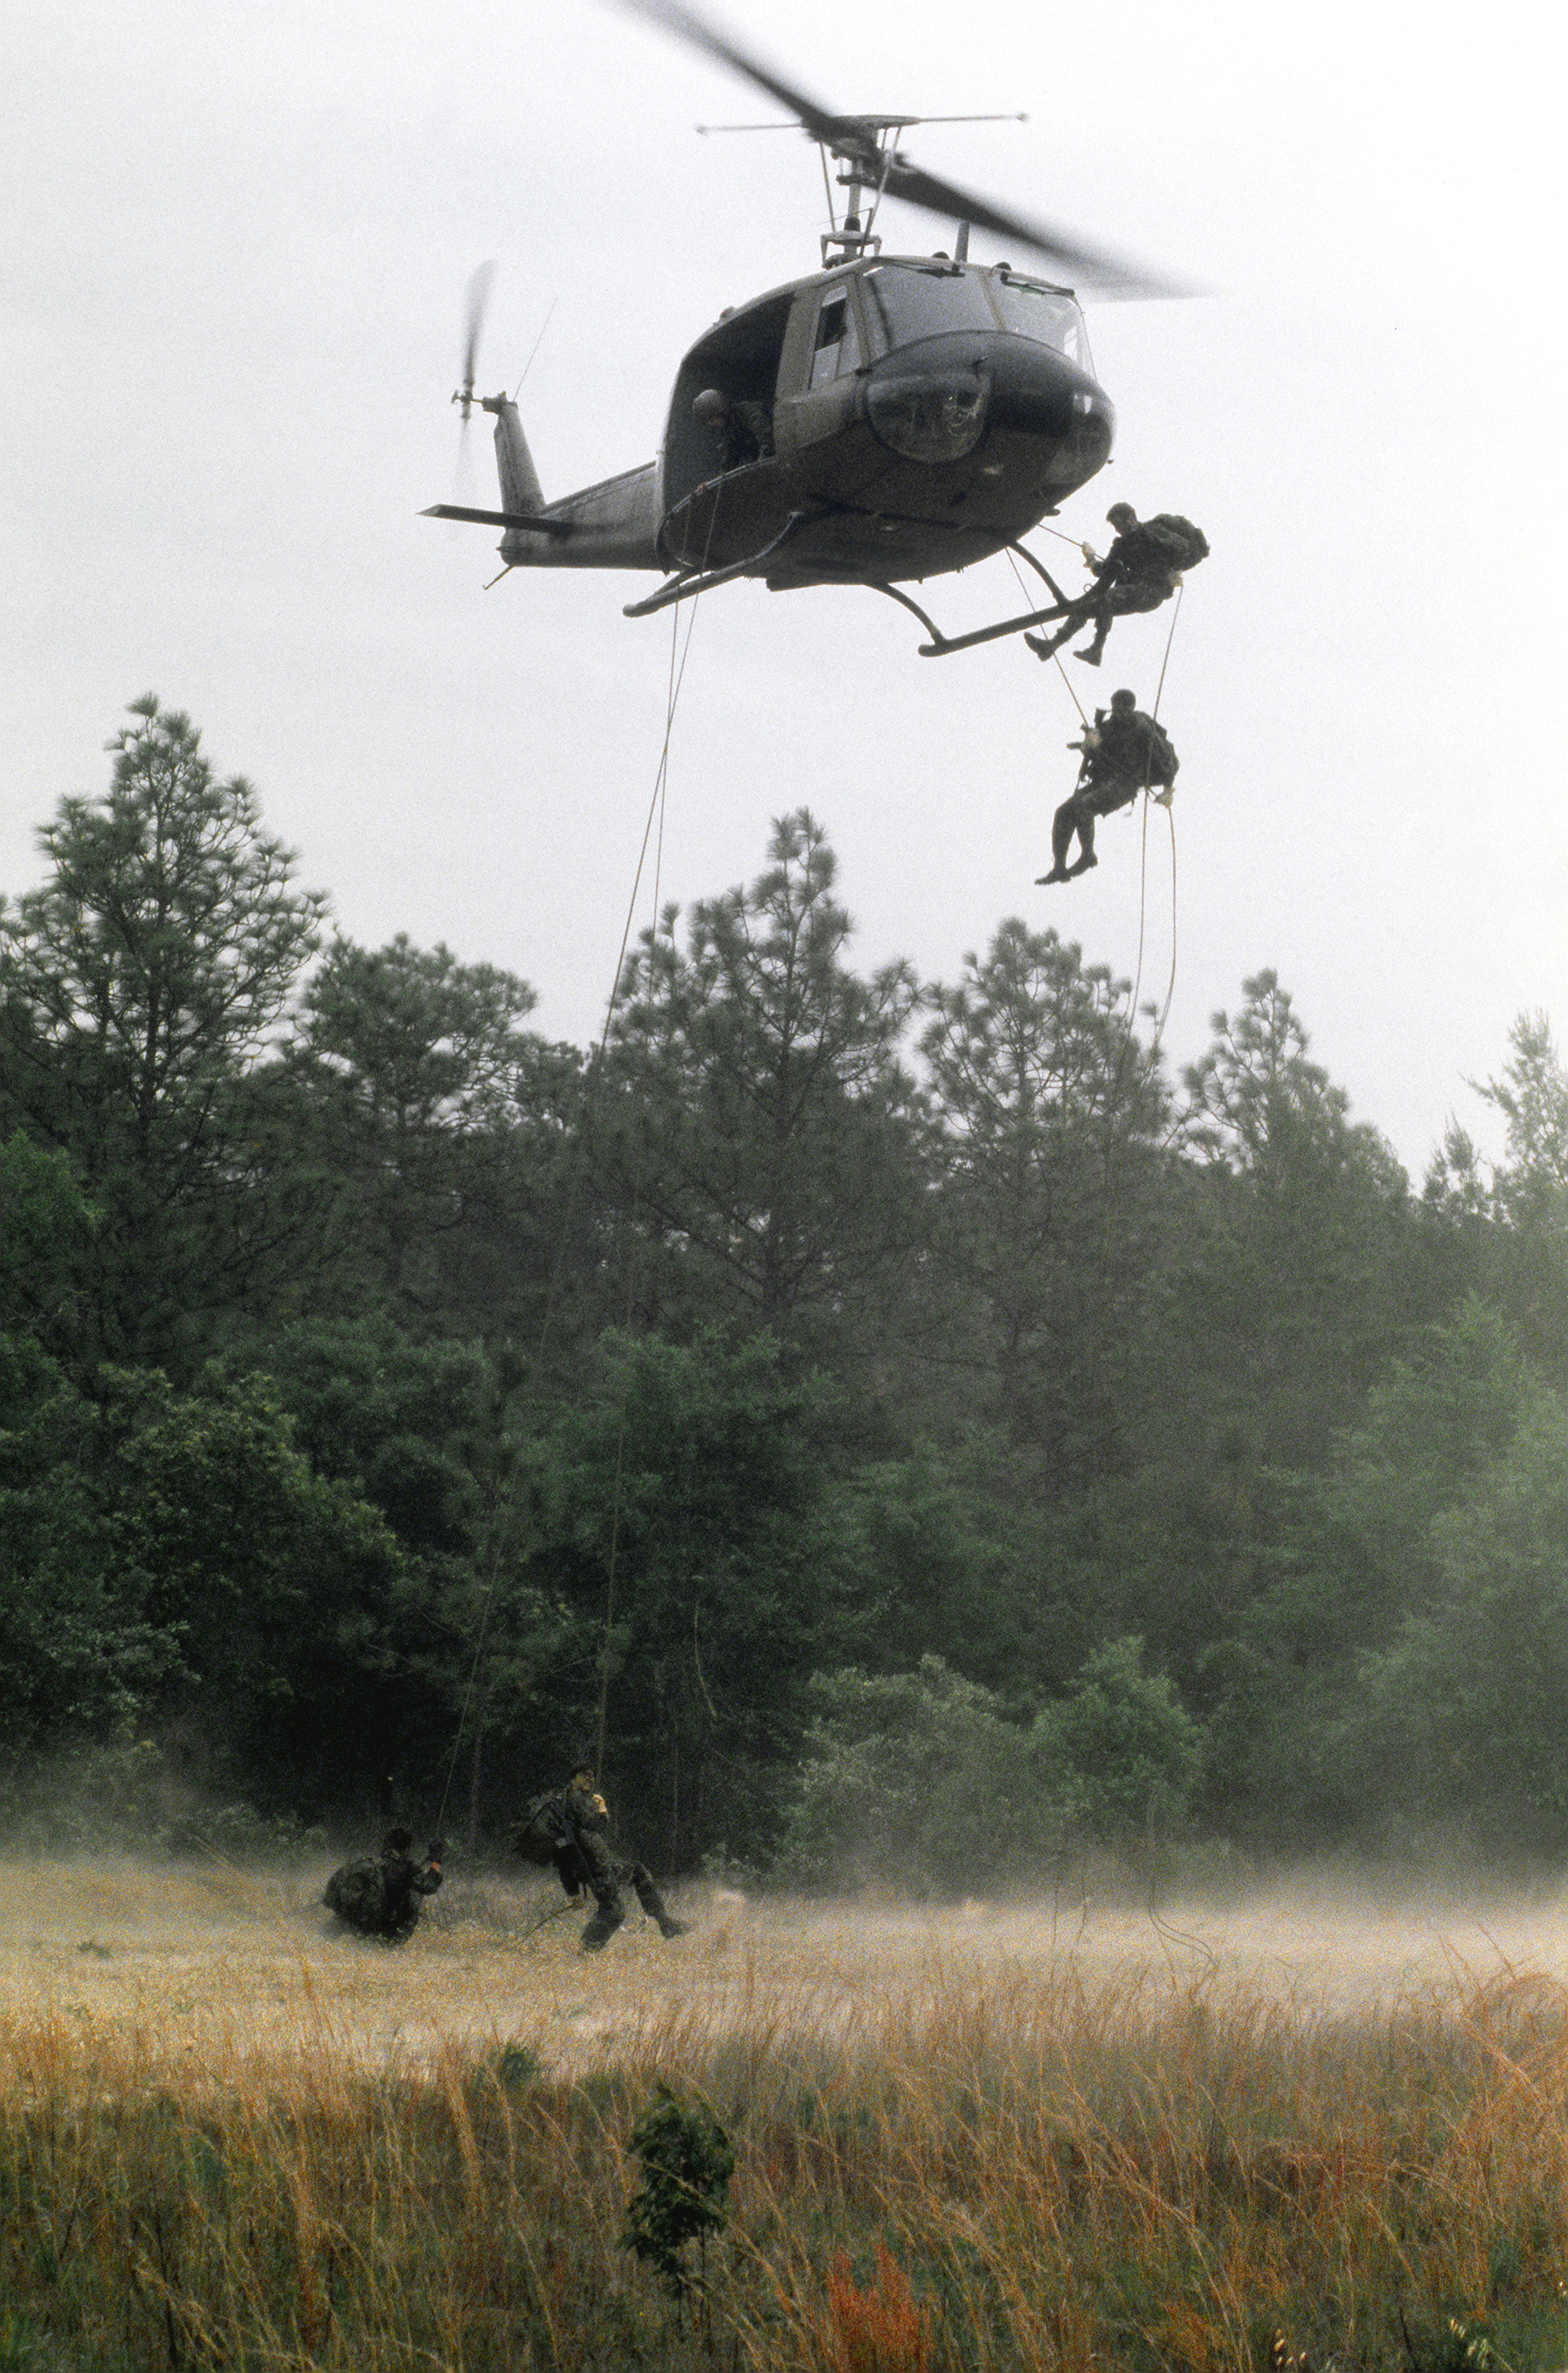 Soldiers leap out of helicopter using ropes